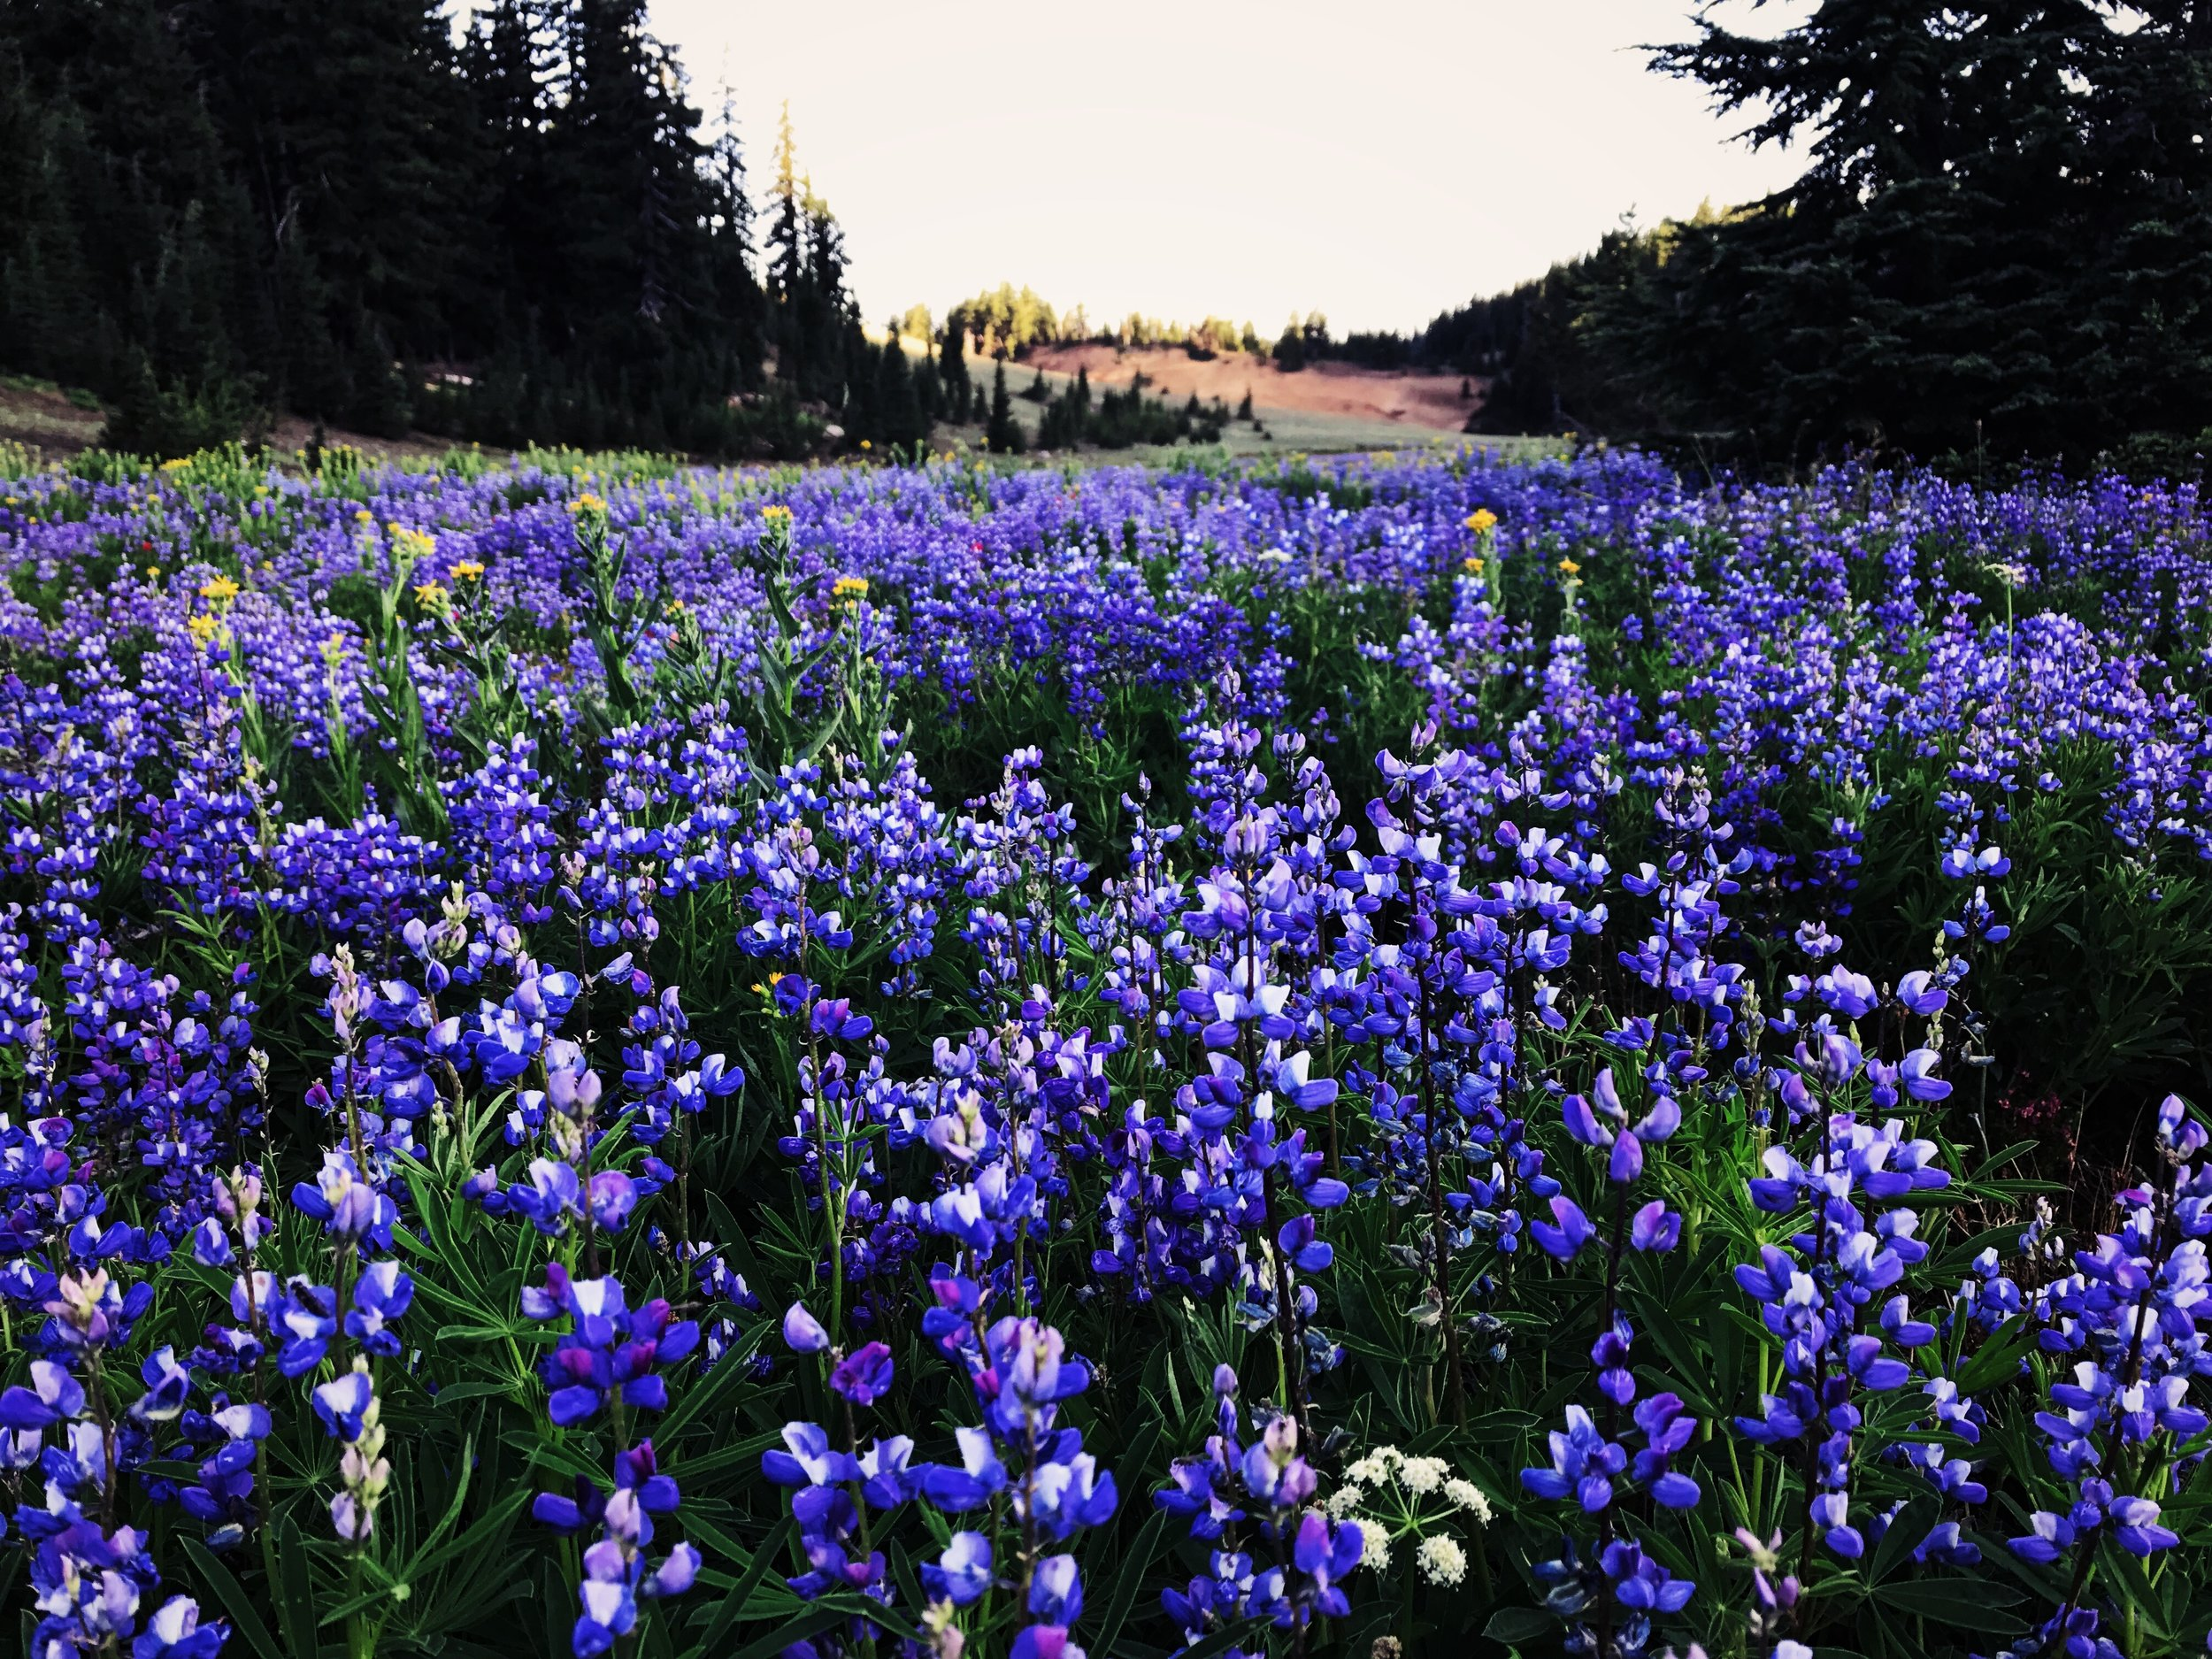 The forest has been bursting with color and the smell of flowers.